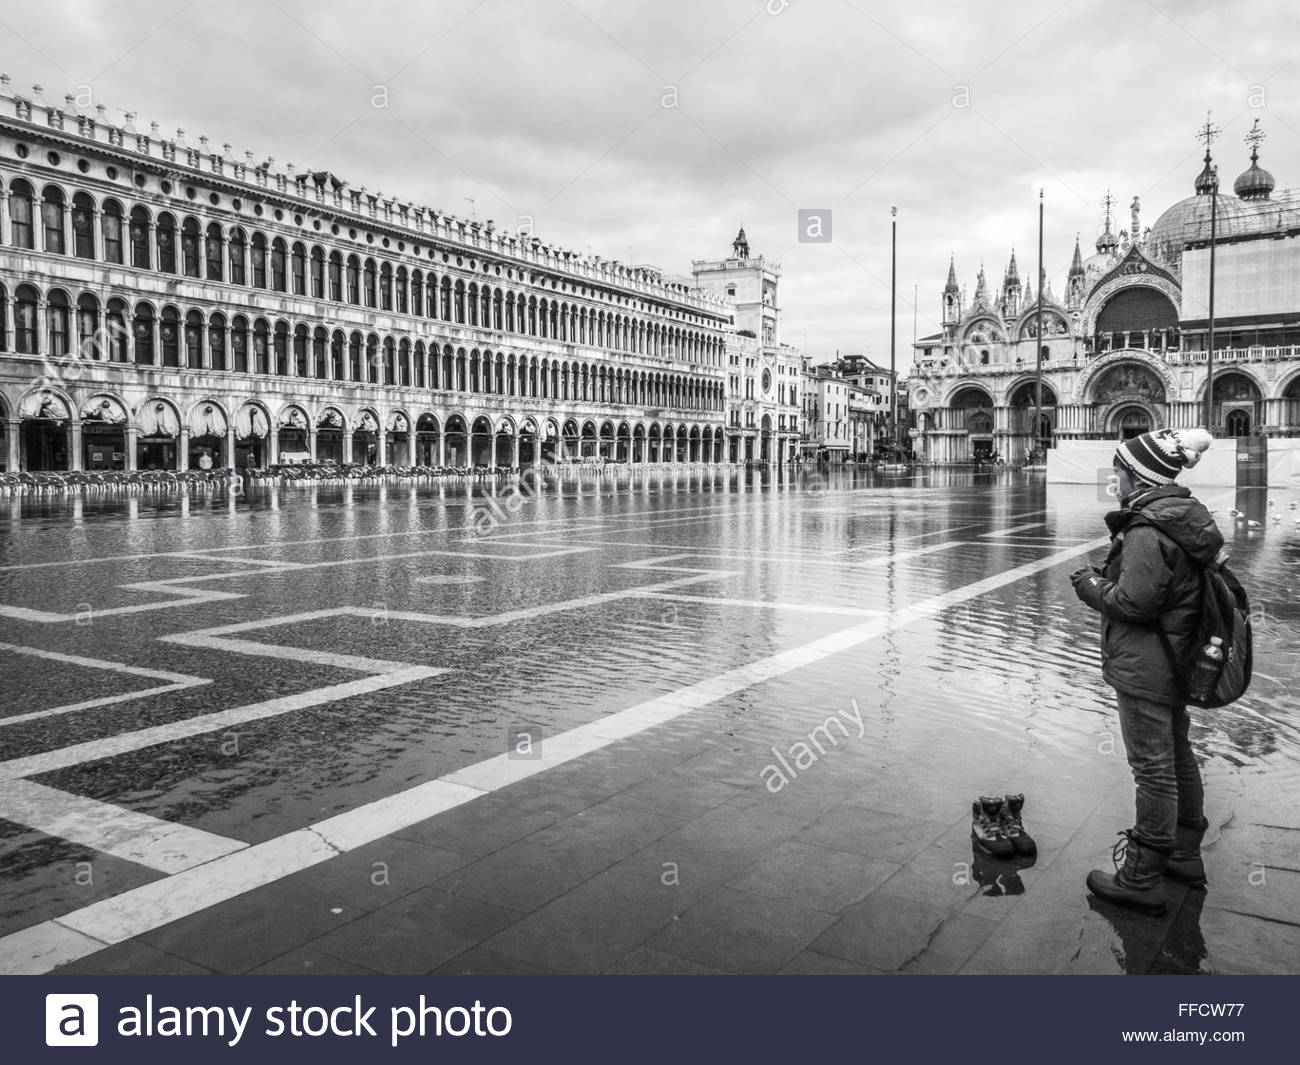 VENICE, ITALY -  24 JANUARY 2013:  Monochrome image of a tourist contemplating crossing a flooded St Mark's - Stock Image